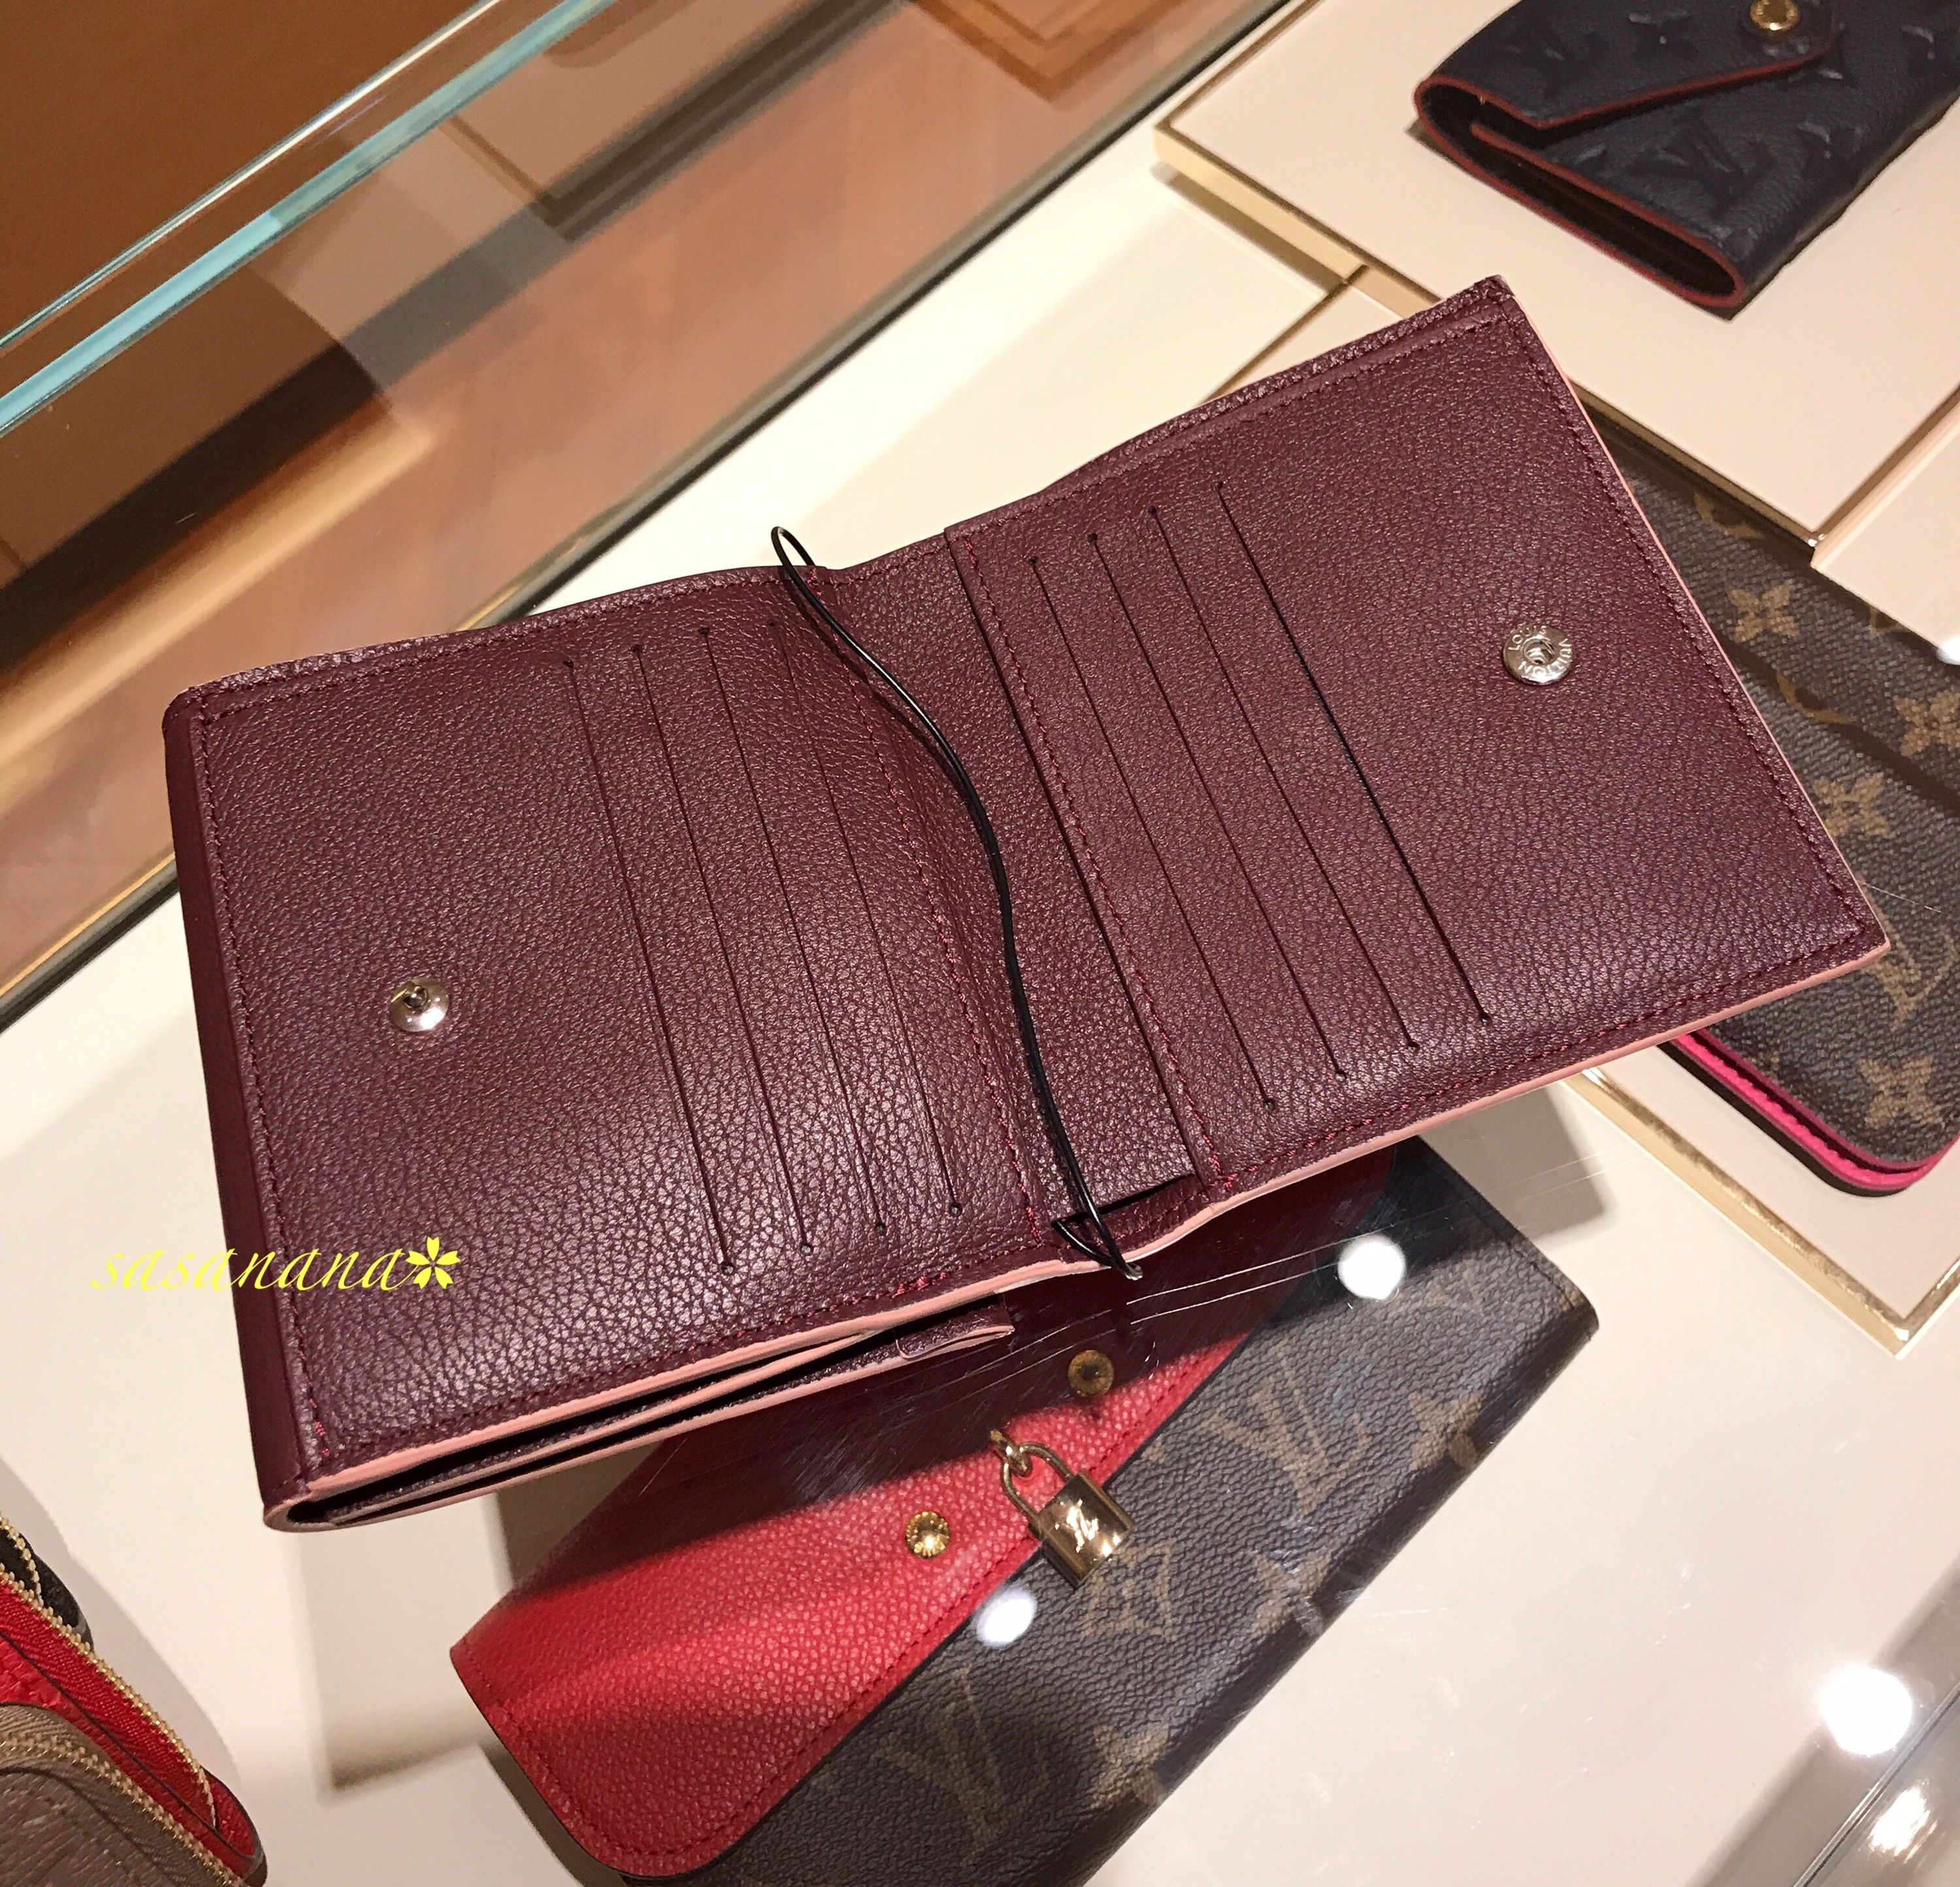 LOCKME II COMPACT WALLET ヴィトン ミニ財布 国内発送 2017AW